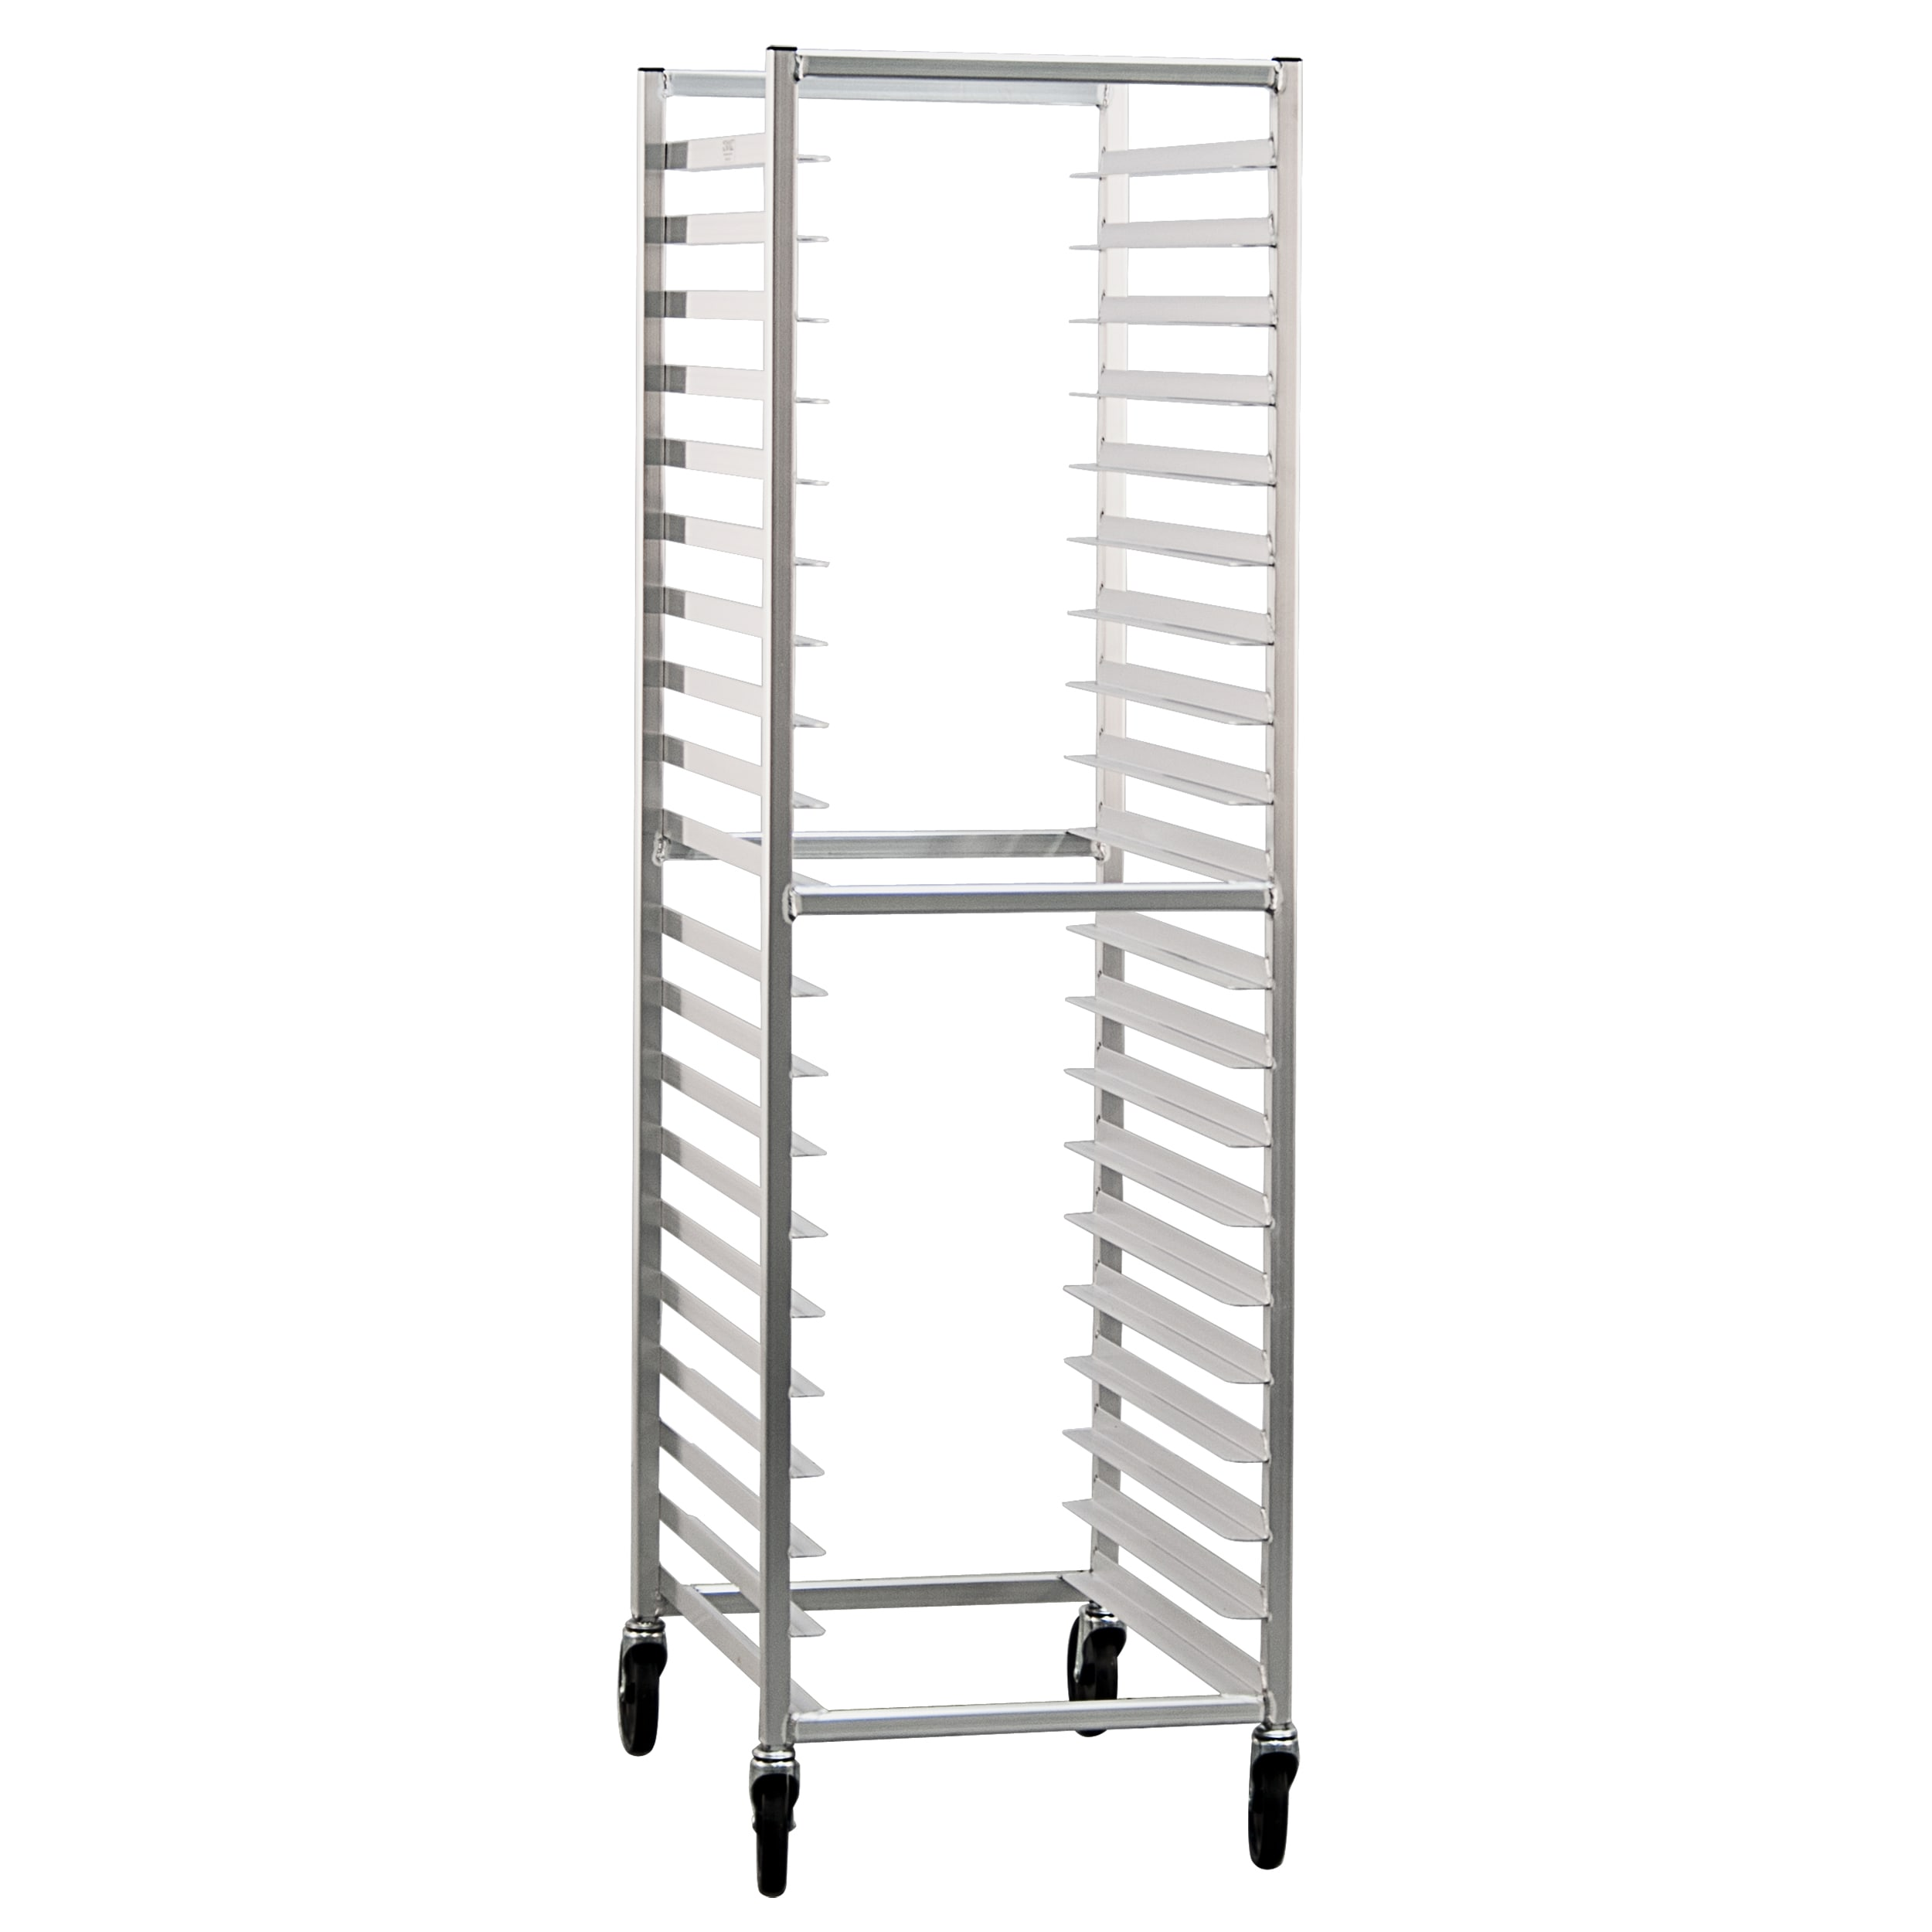 New Age Bun Pan Rack, Welded, 20 Pan Capacity